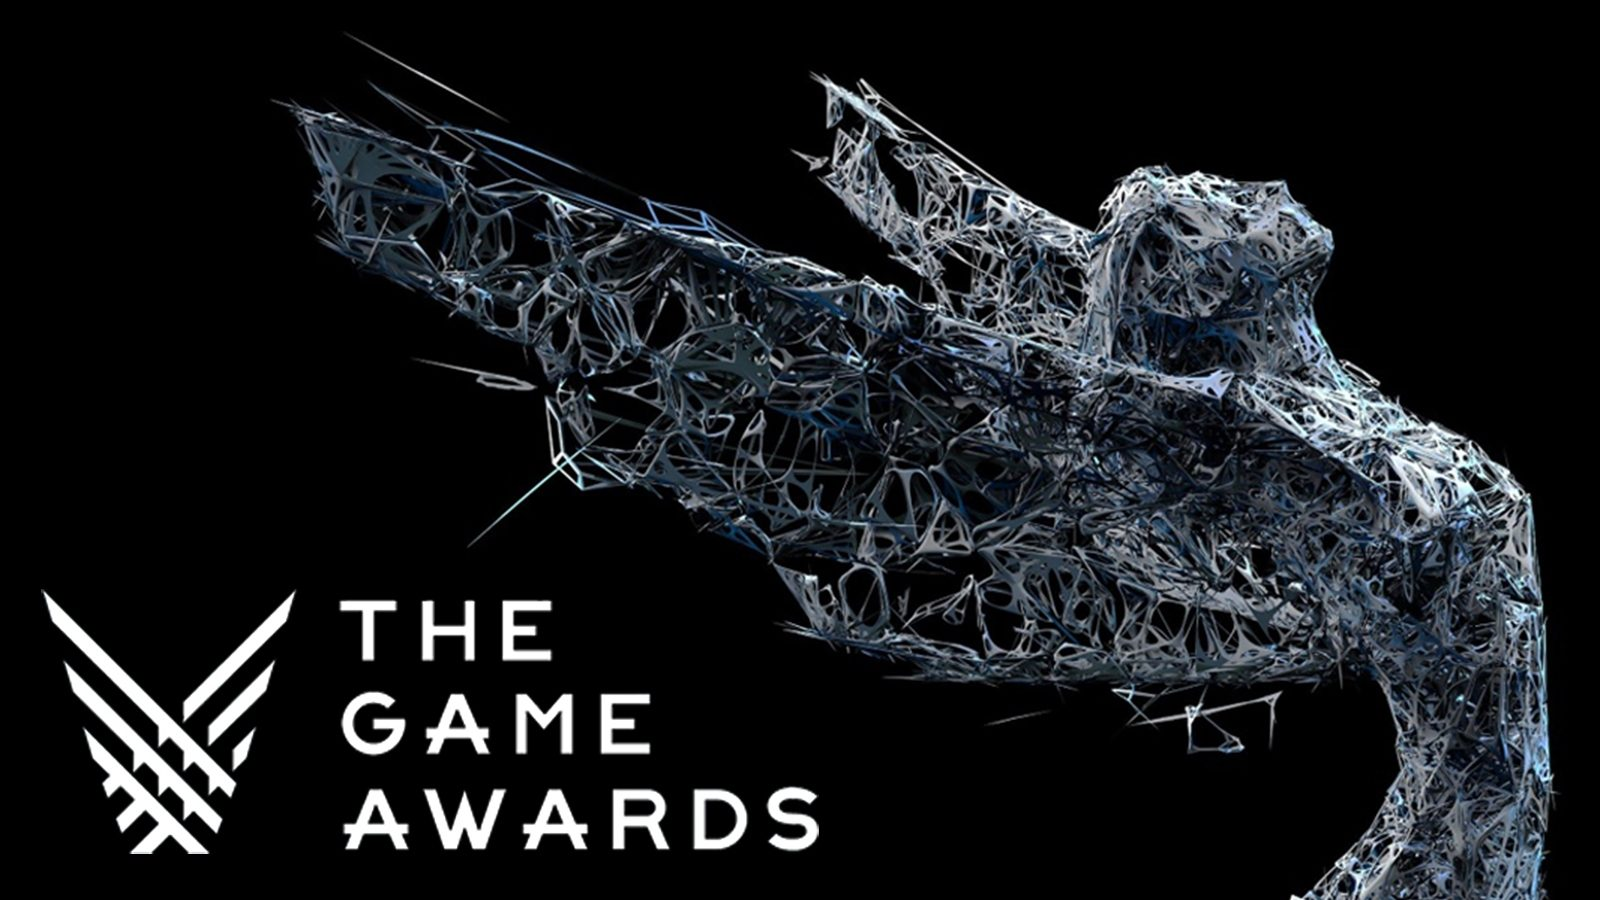 The Game Awards: There Have Been No Leaks, Geoff Keighley Says